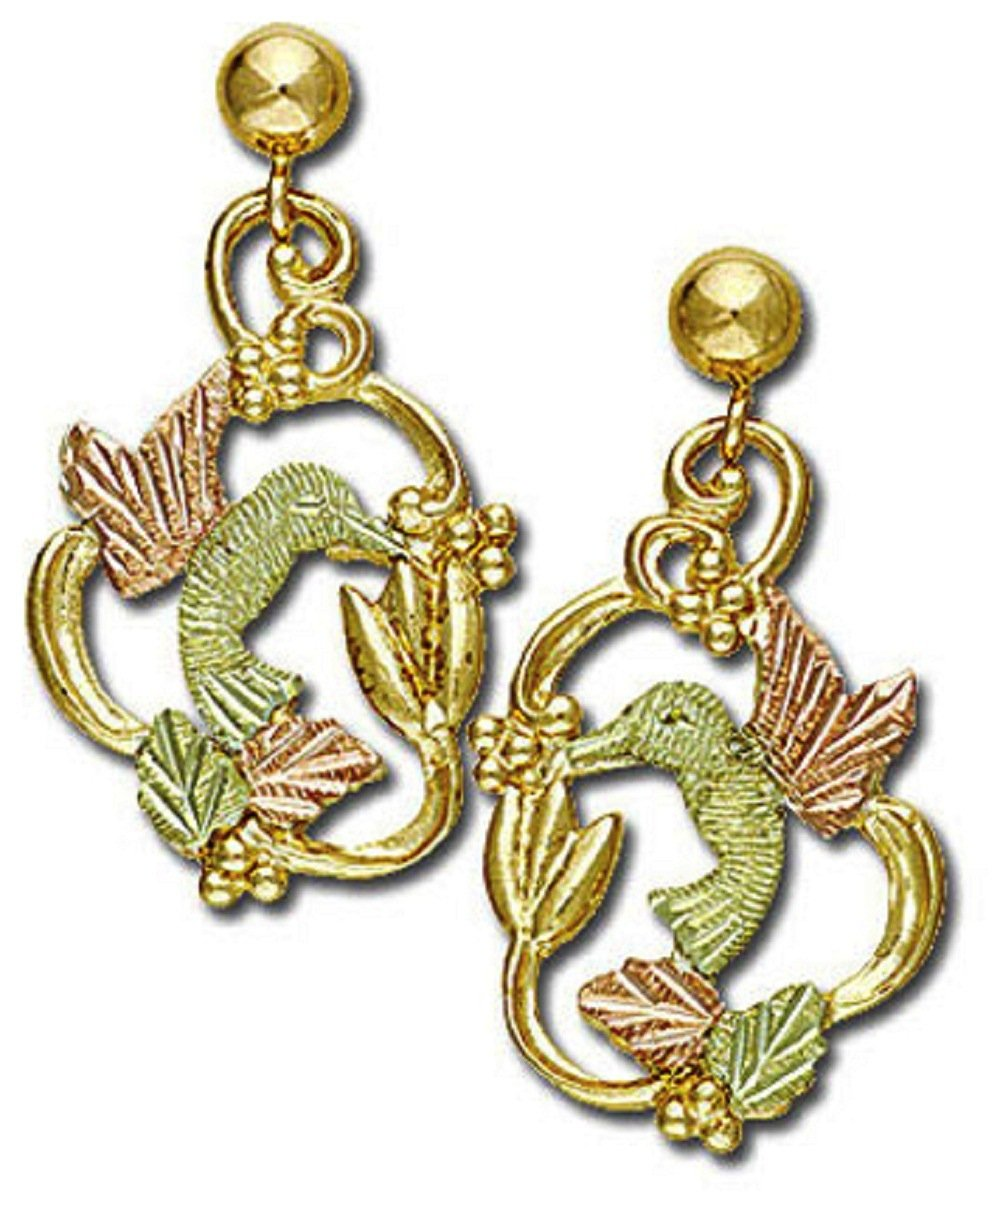 Landstroms 10k Black Hills Gold Hummingbird Earrings, for Pierced Ears - 01593